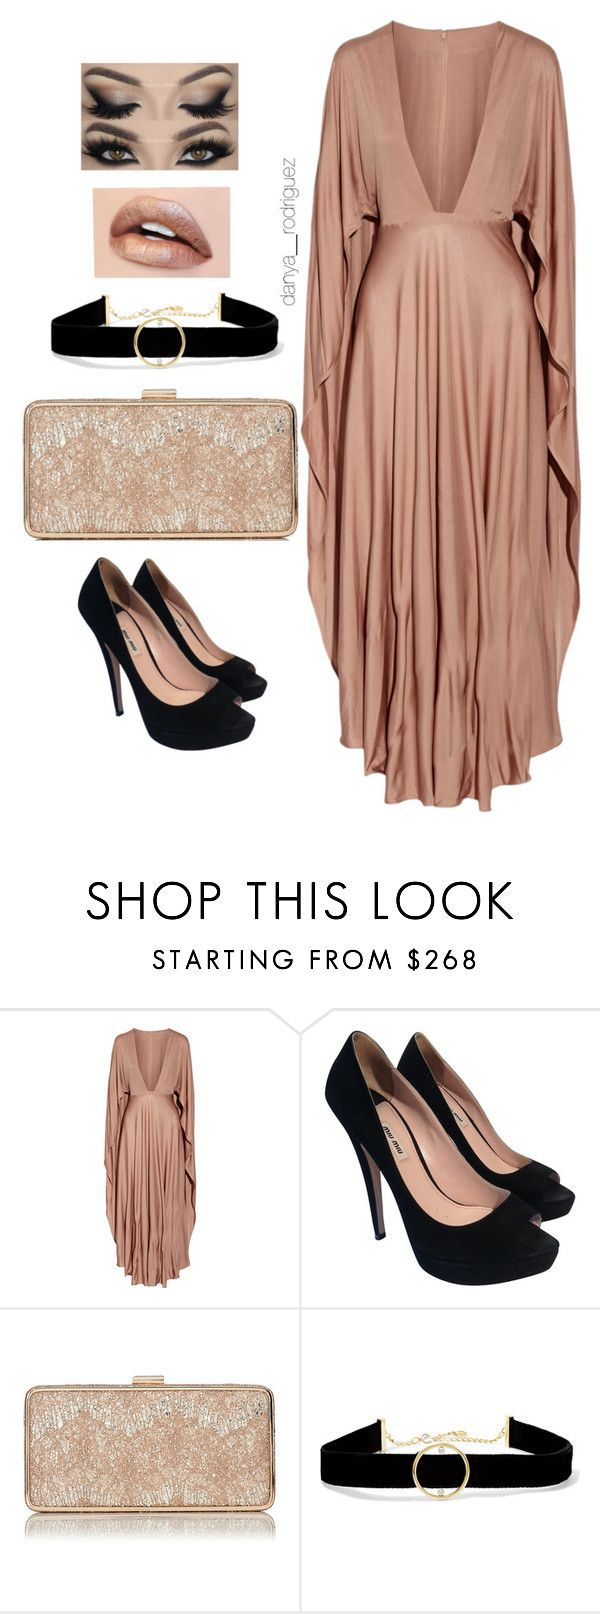 """Sin título #113"" by sousou2578 on Polyvore featuring moda, Valentino, Miu Miu y Anissa Kermiche"